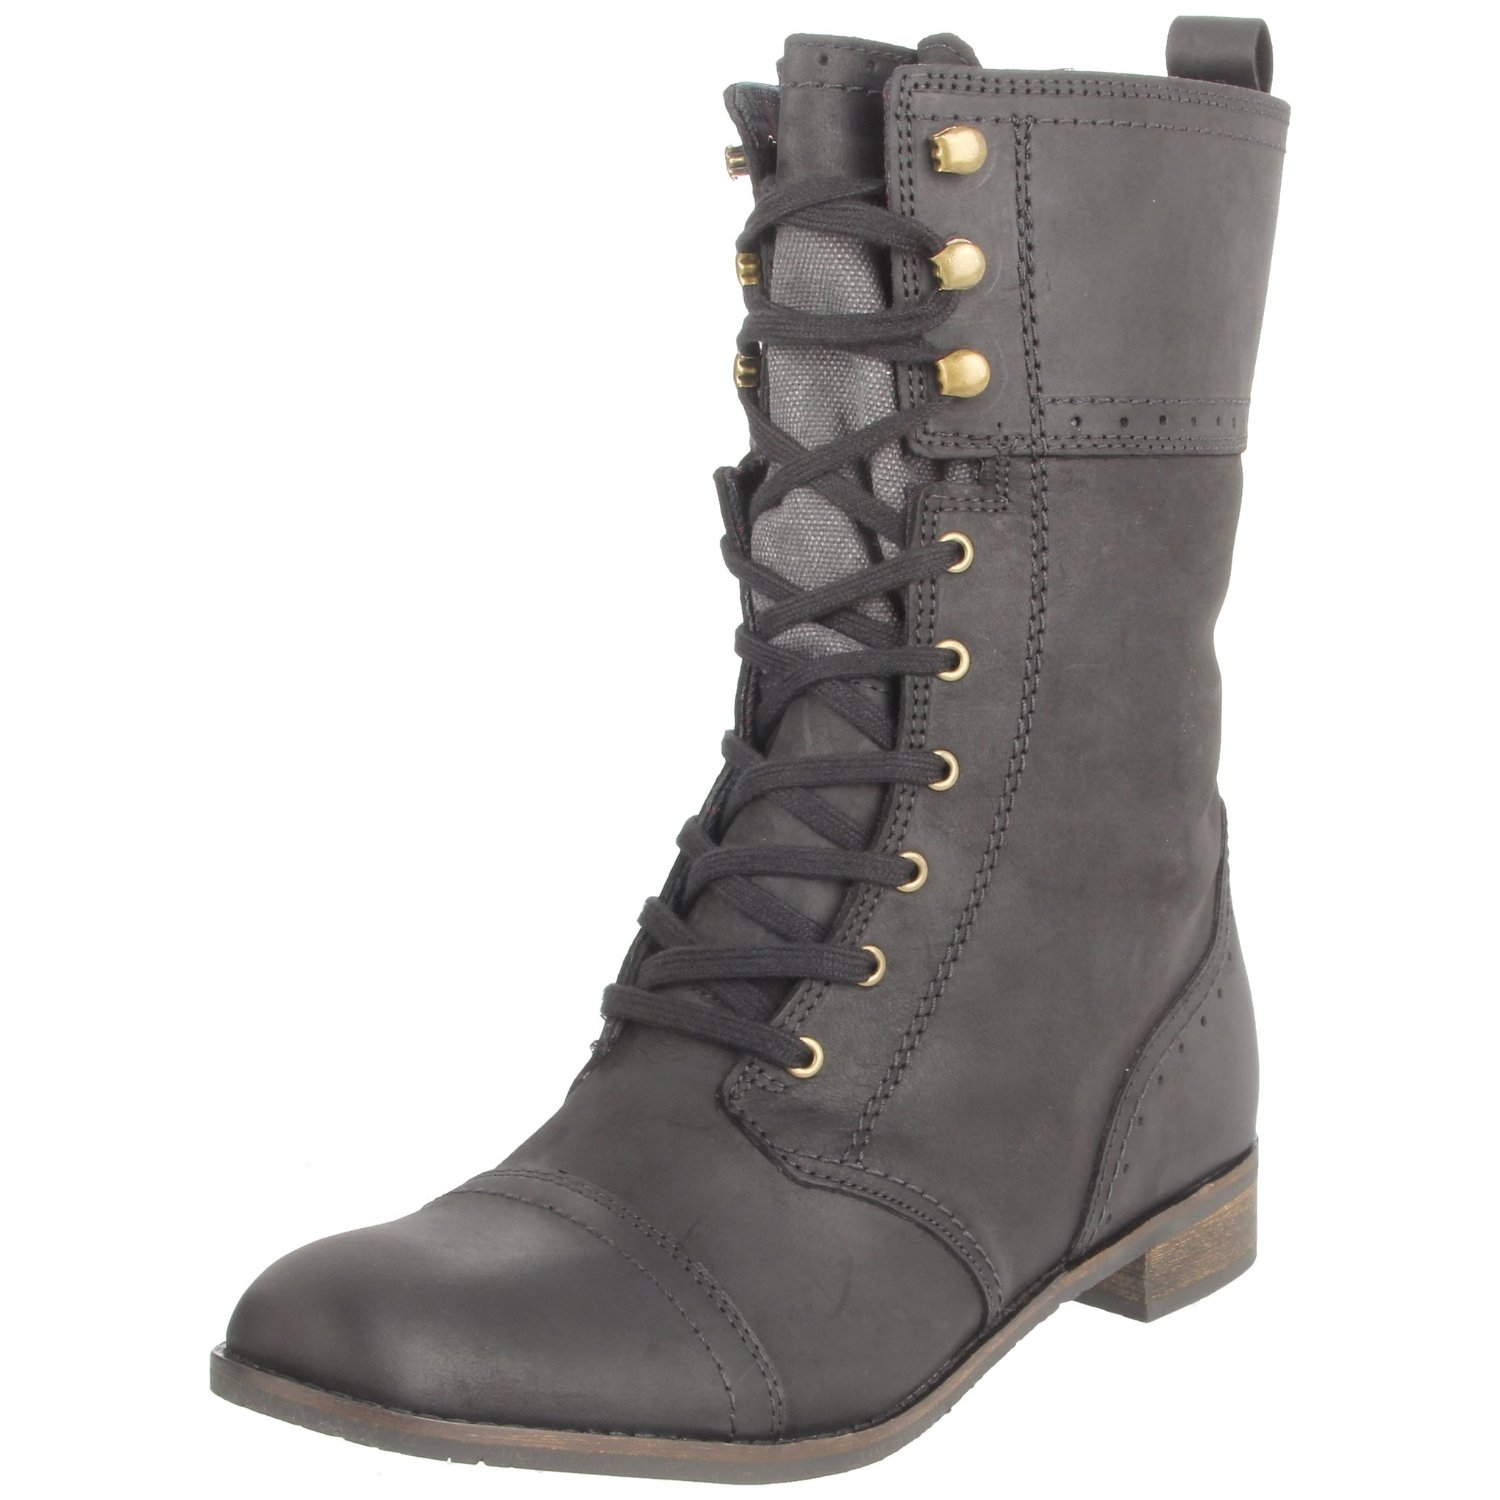 Not-So-Clunky Combat Boots | Sugar Plum Sisters: https://sugarplumsisters.com/2011/11/combat-boots/